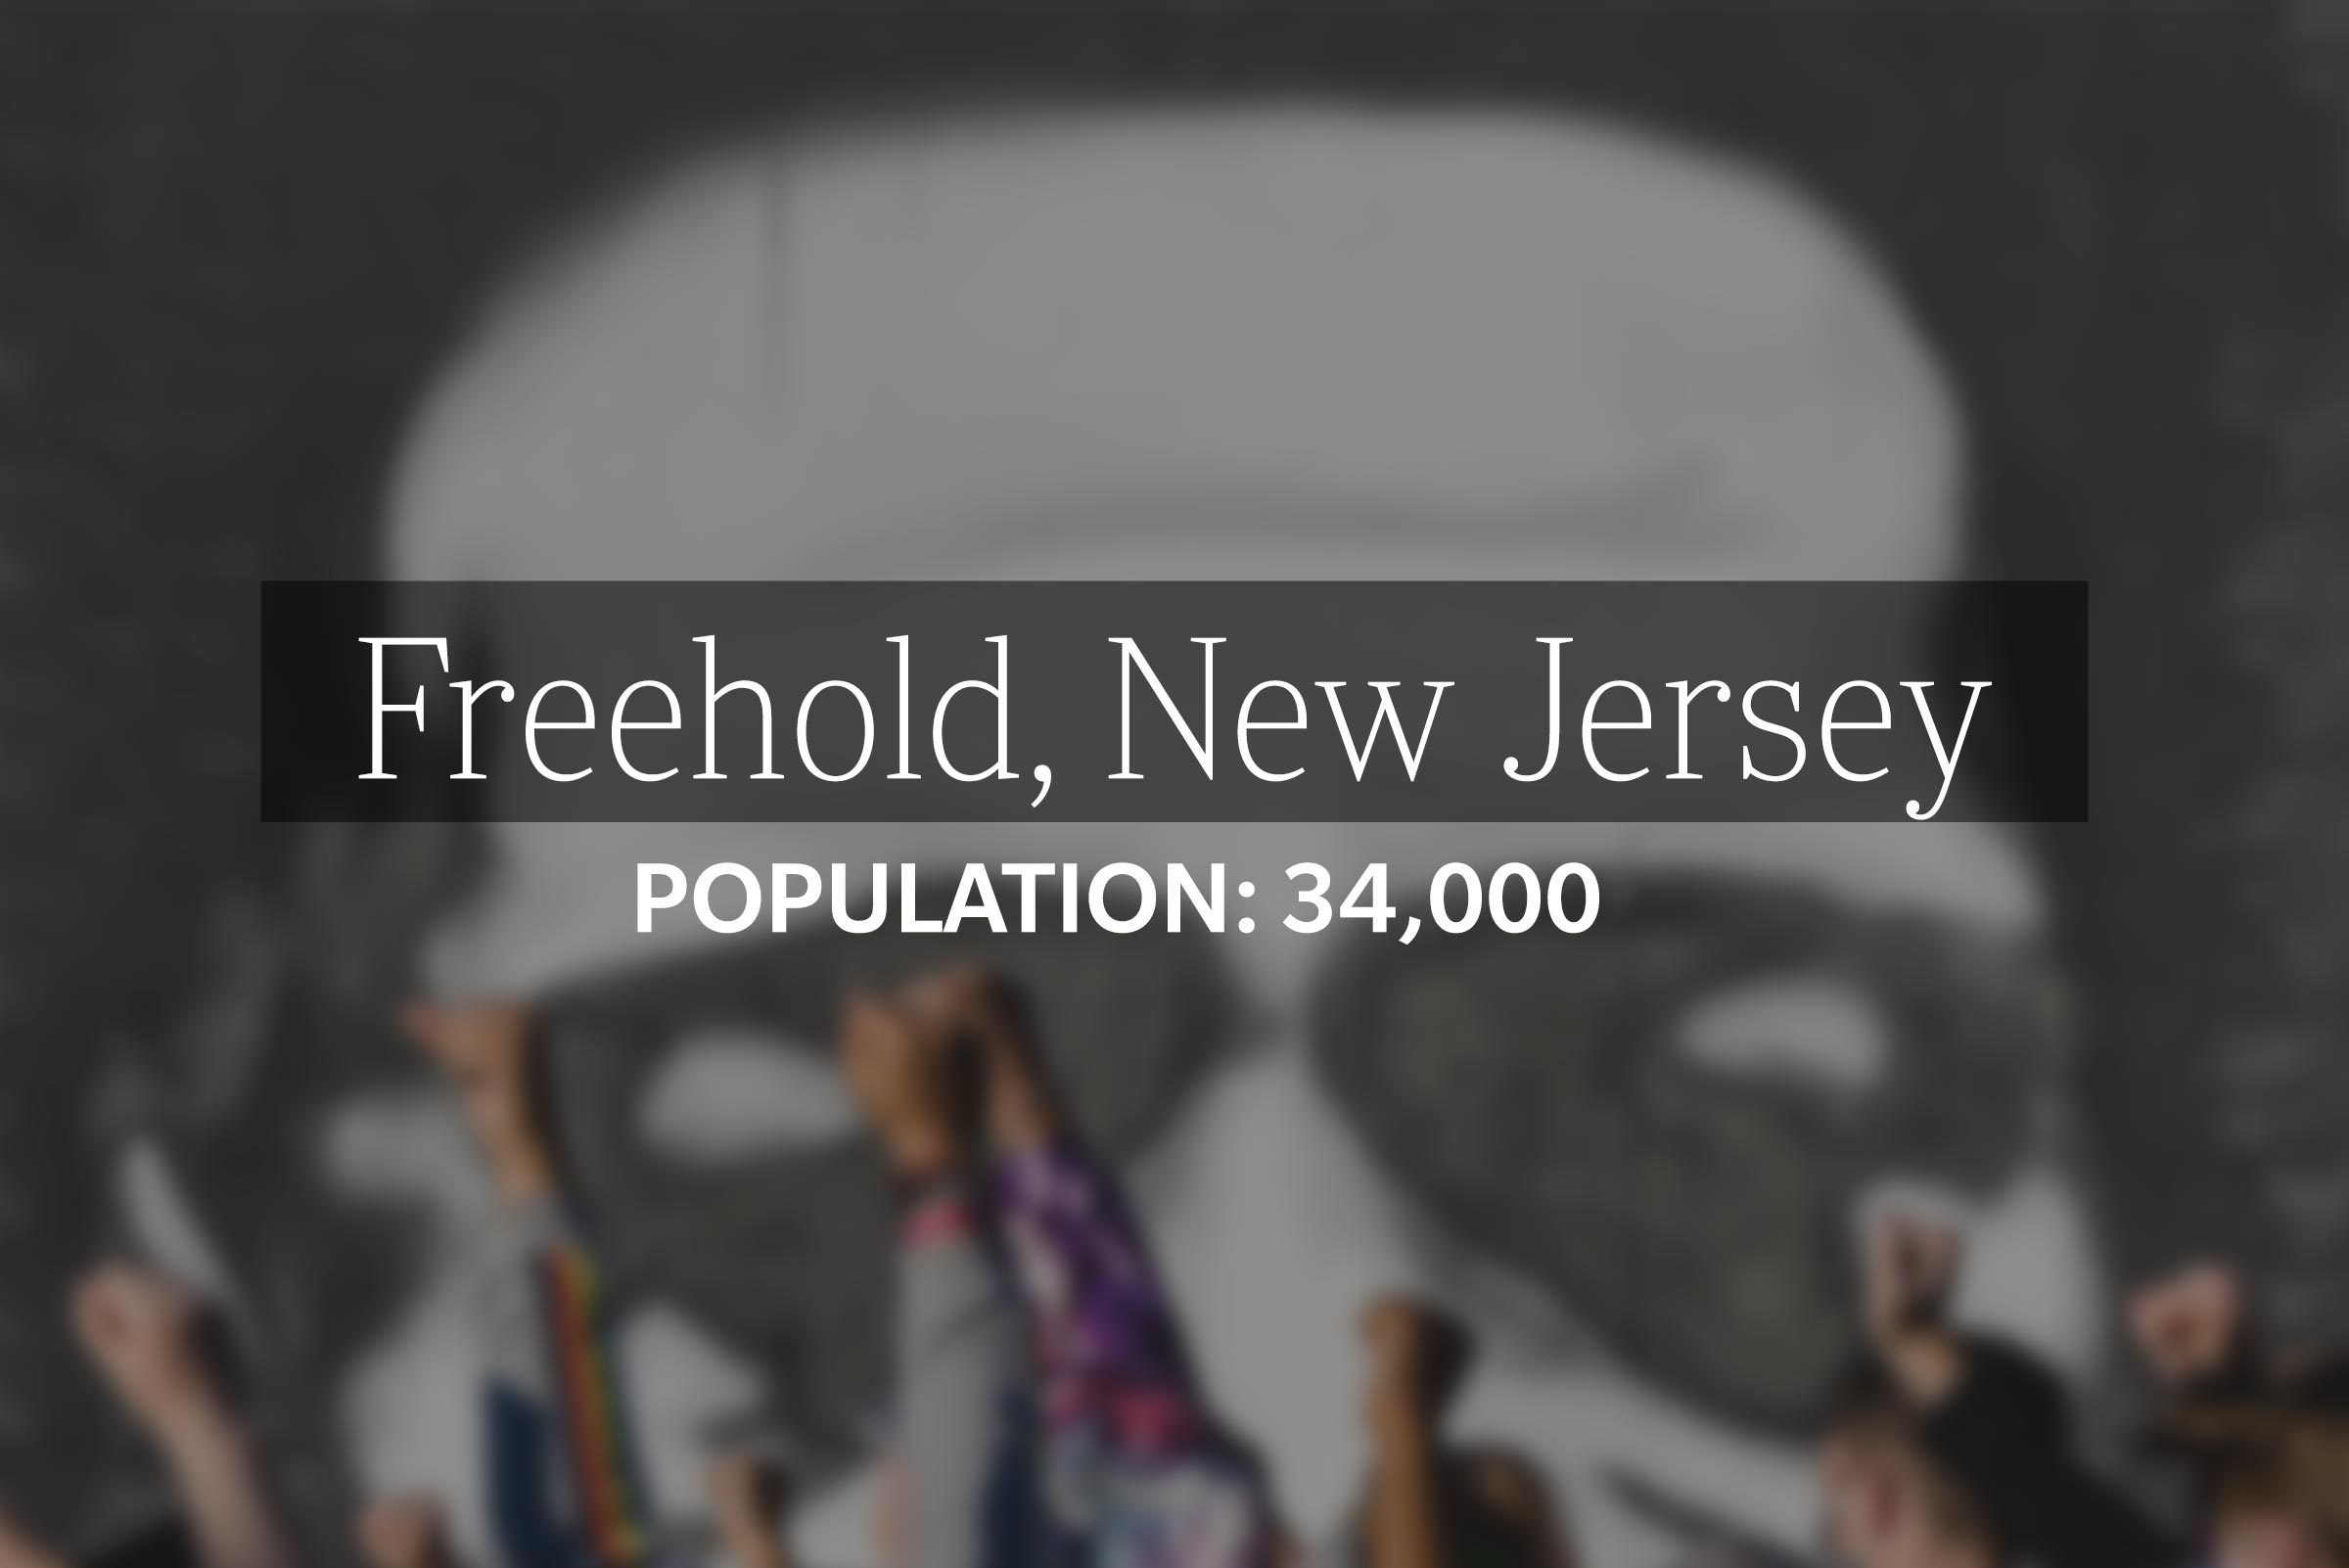 Freehold, New Jersey (Population: 34,000)